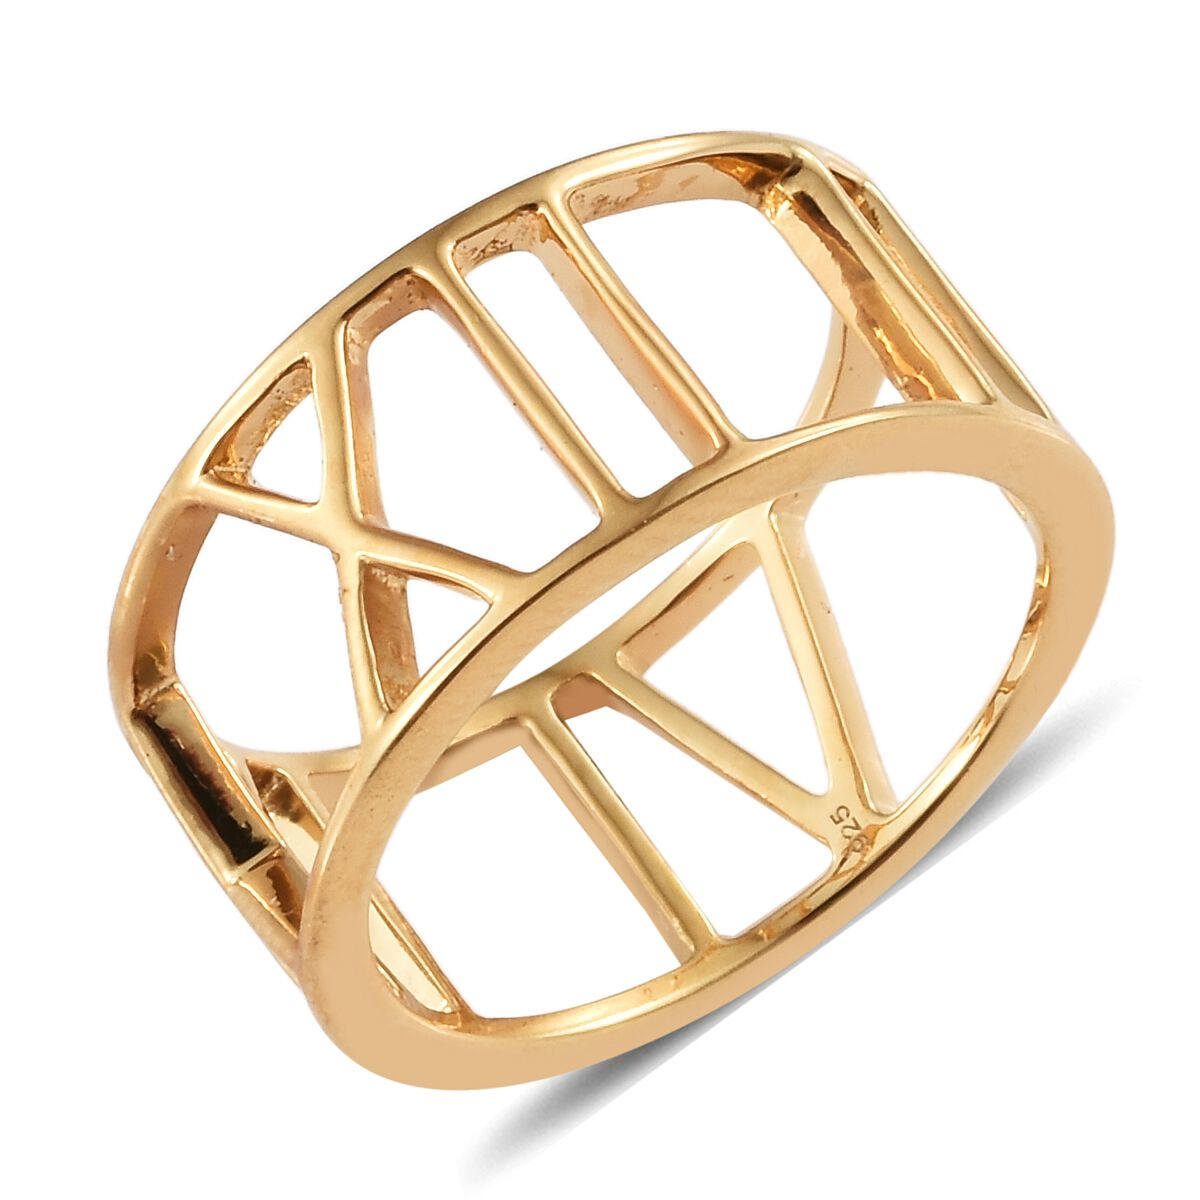 Roman Number Band Ring in Gold Plated 925 Sterling Silver